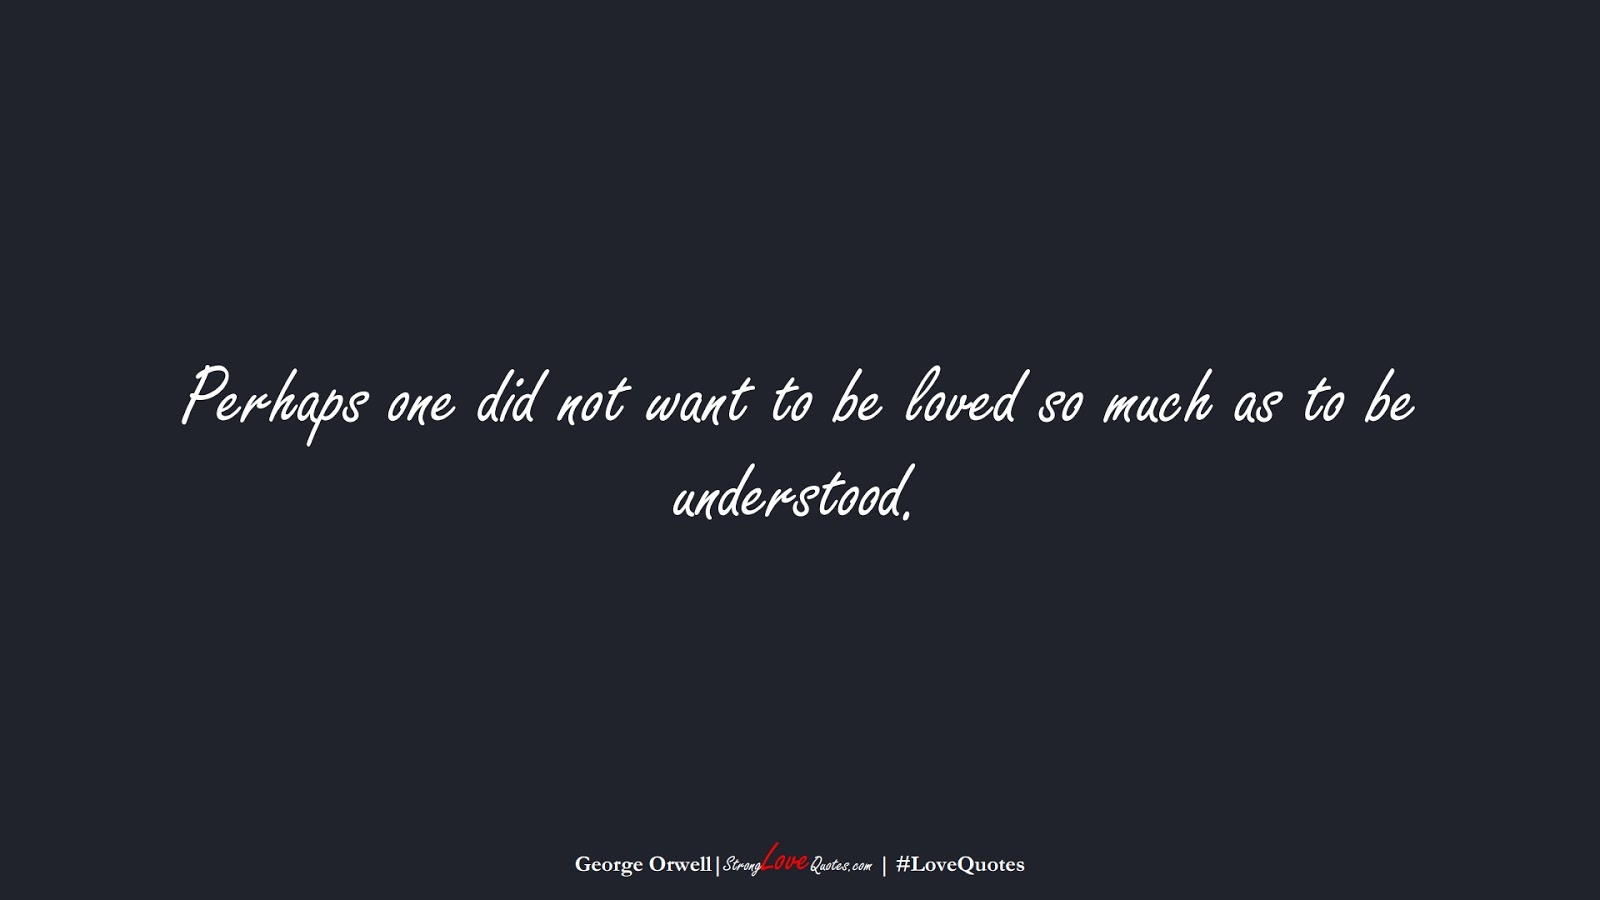 Perhaps one did not want to be loved so much as to be understood. (George Orwell);  #LoveQuotes